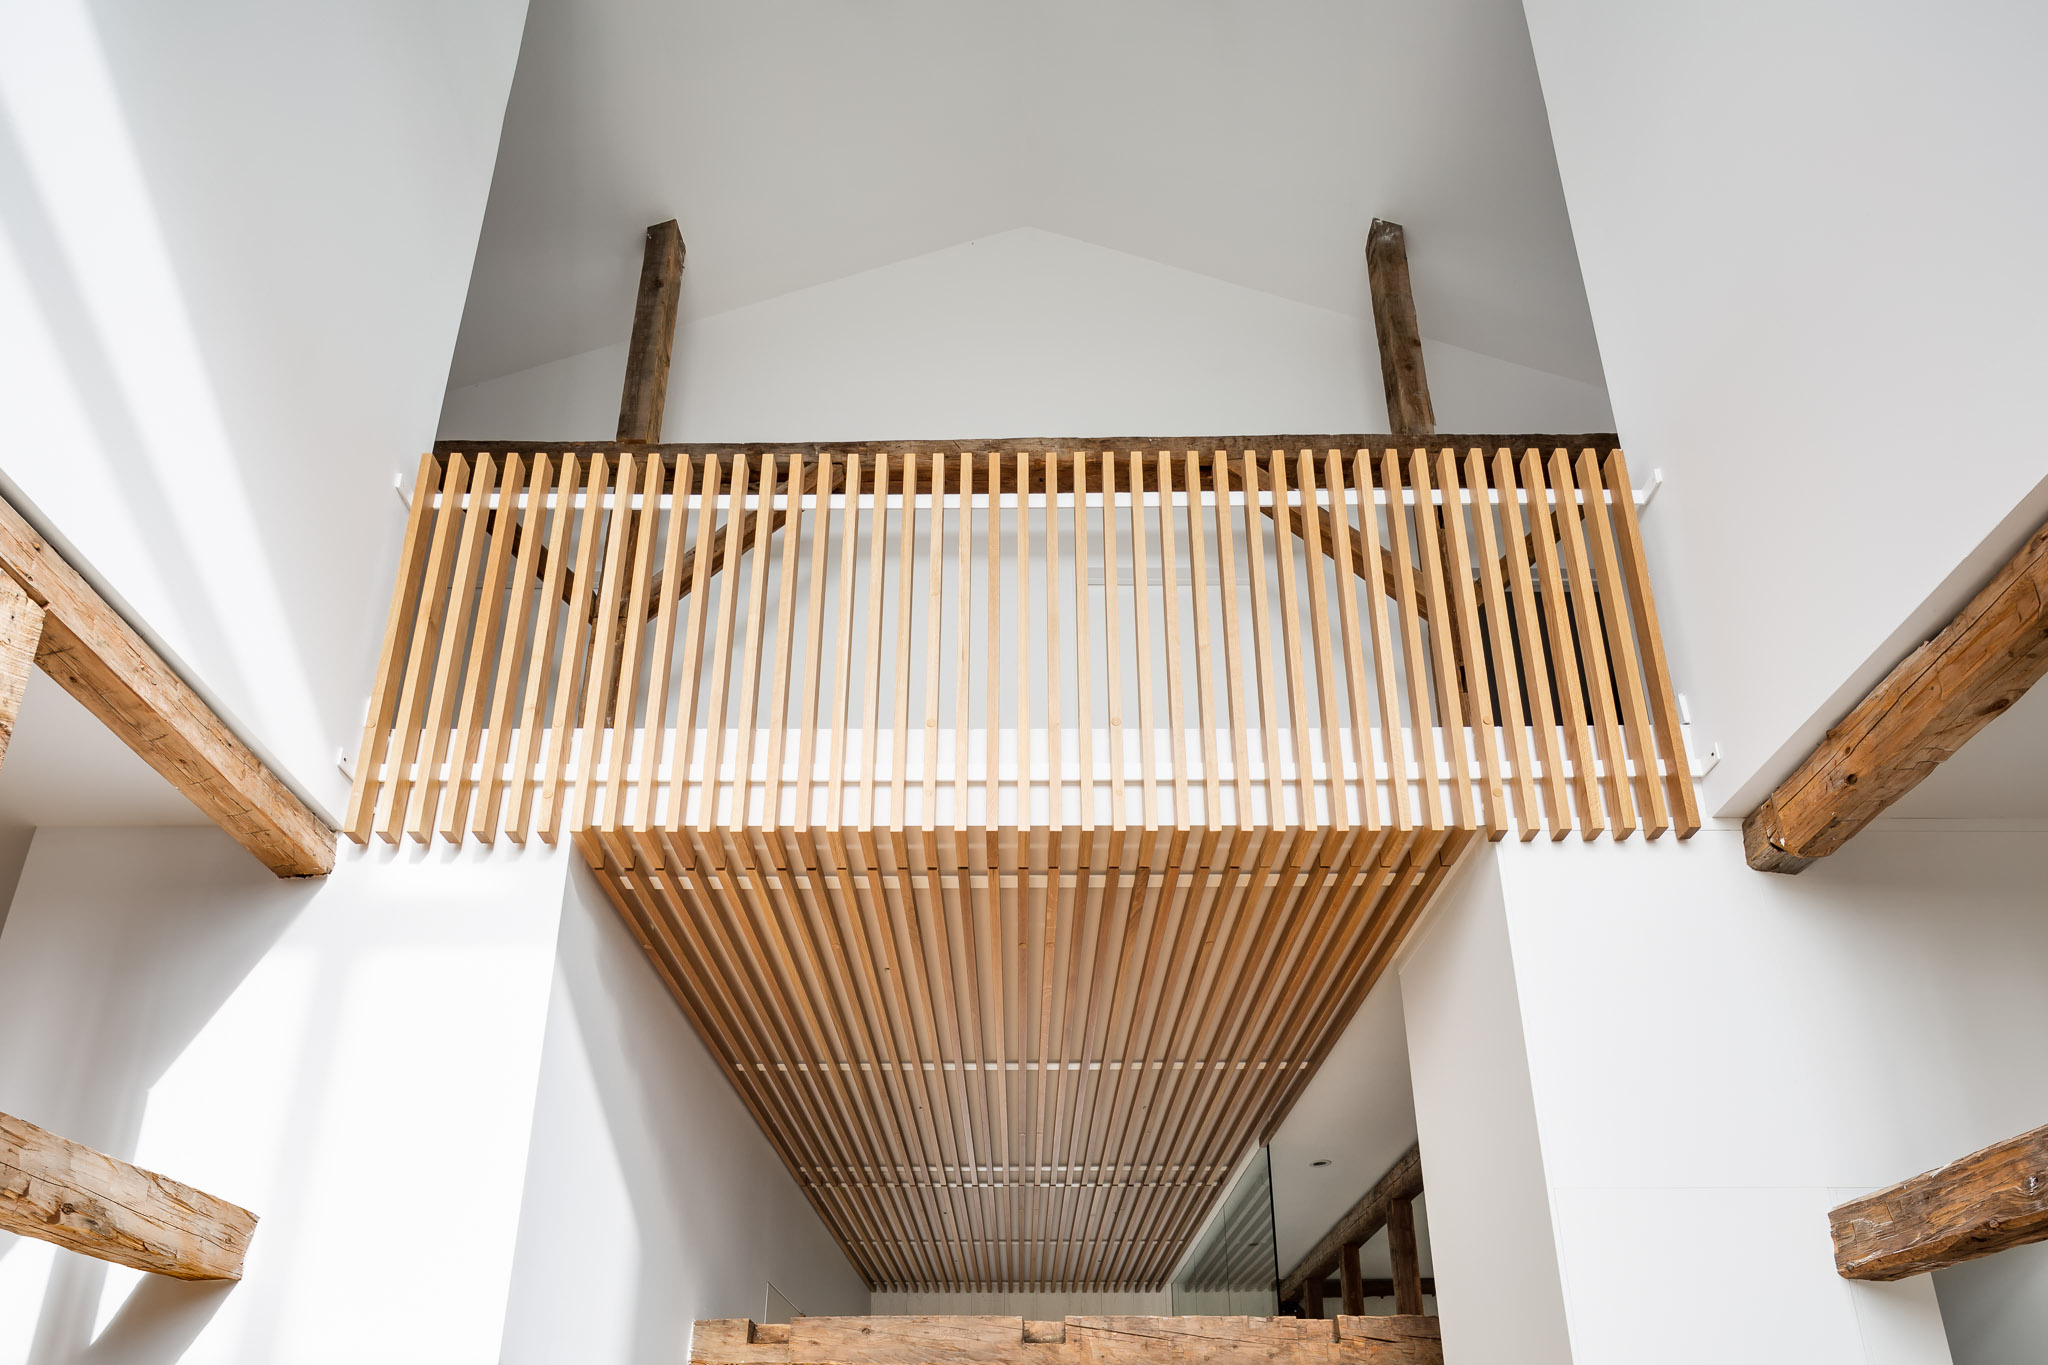 Railing in white oak slats continuing on the ceiling of the entrance. Old barn structure in apparent wood. Double height cathedral ceiling